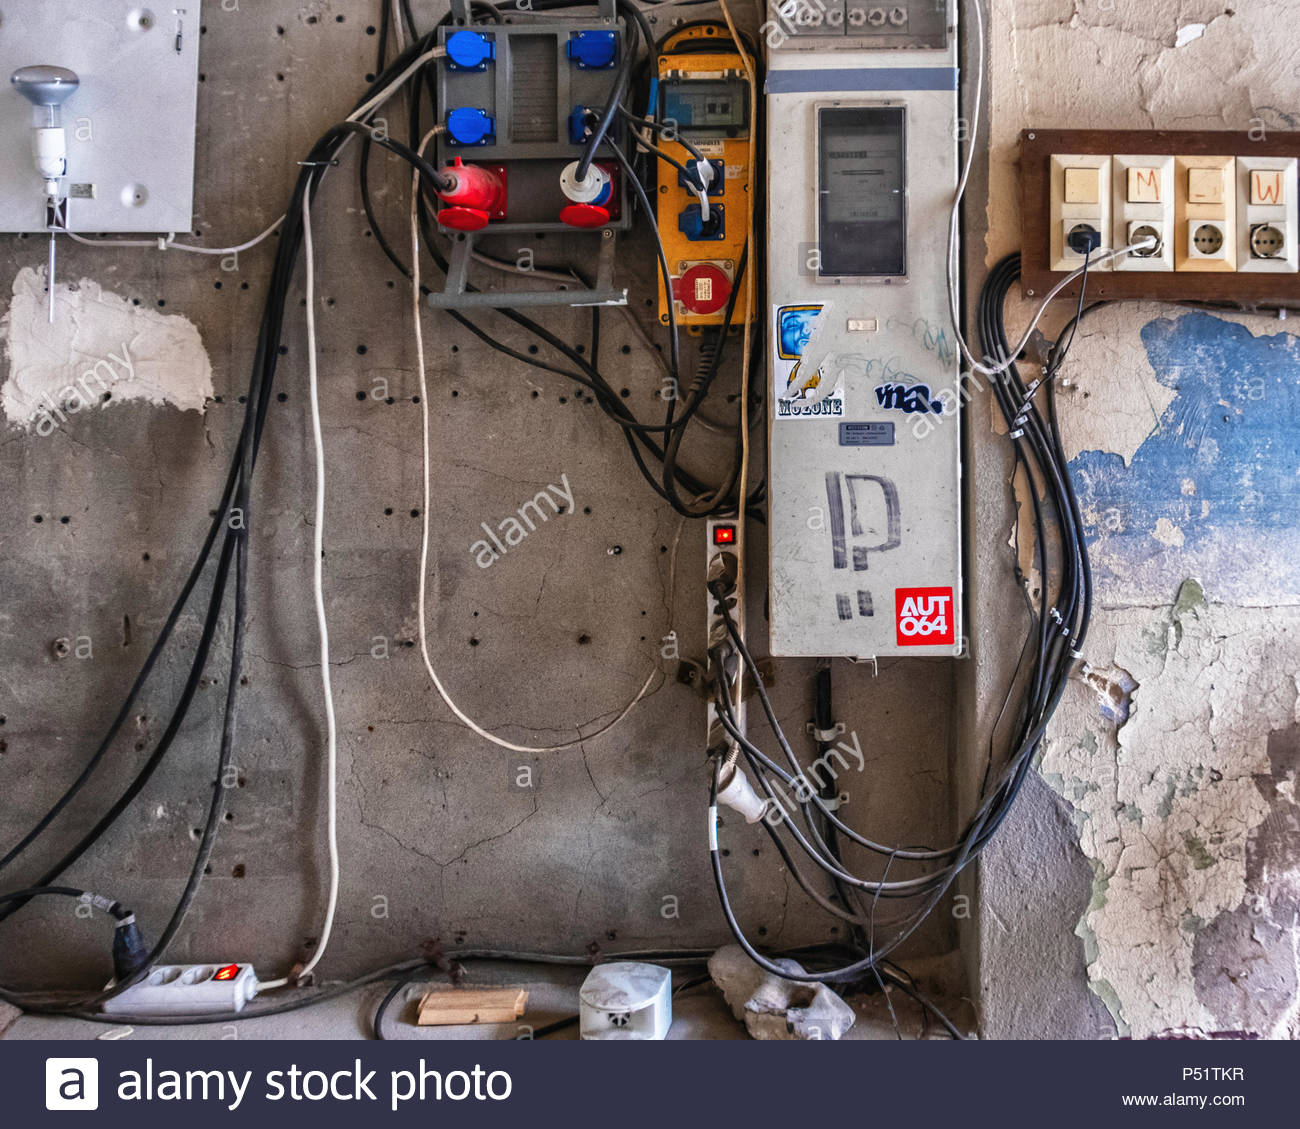 Electric Wiring Building Wall Stock Photos & Electric Wiring ...